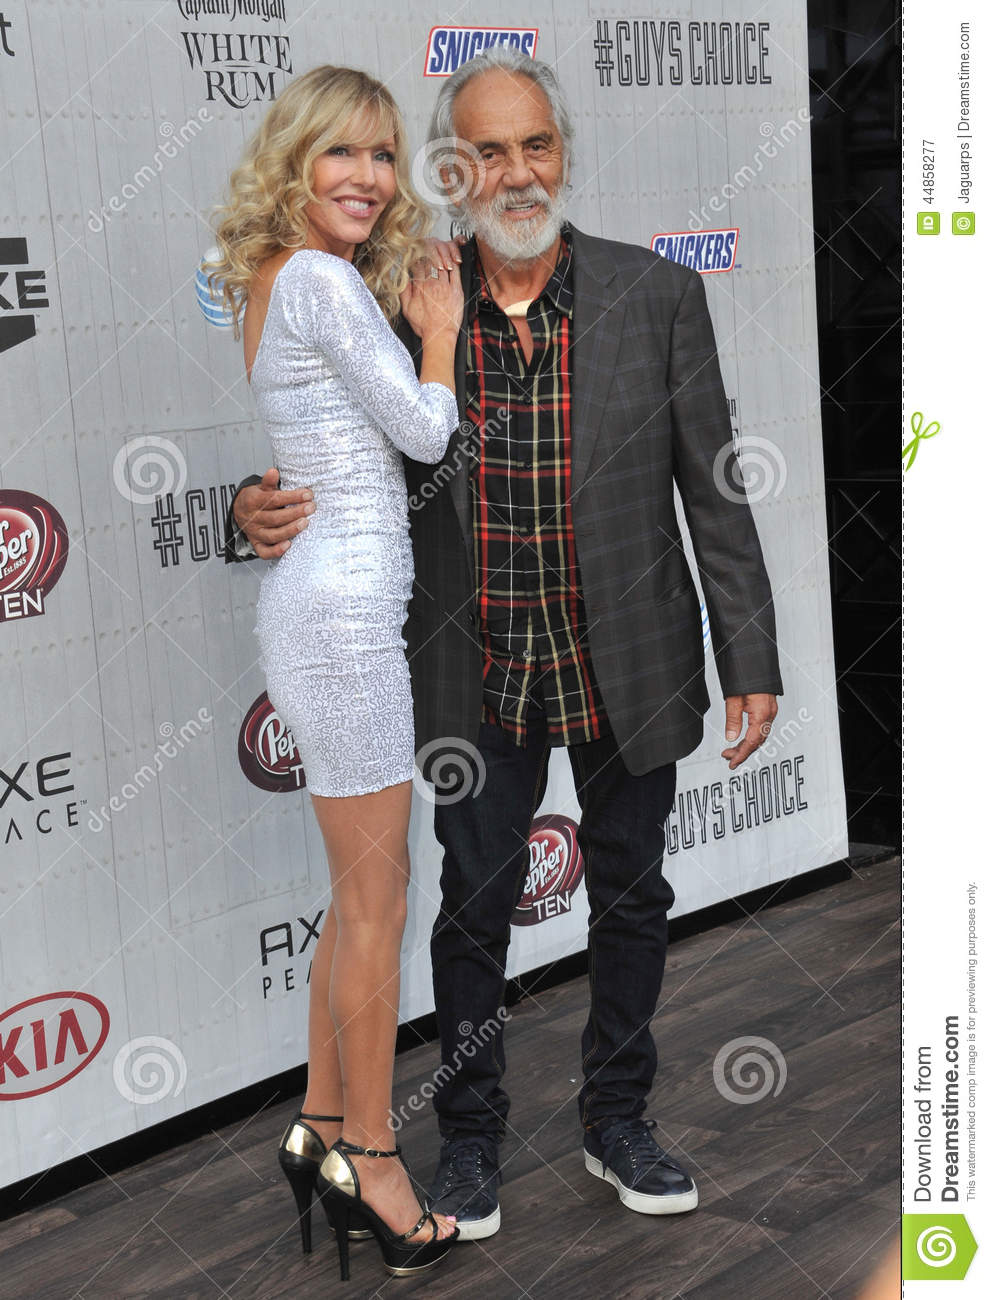 Forum on this topic: Rebecca del Rio (1929?010), shelby-chong/